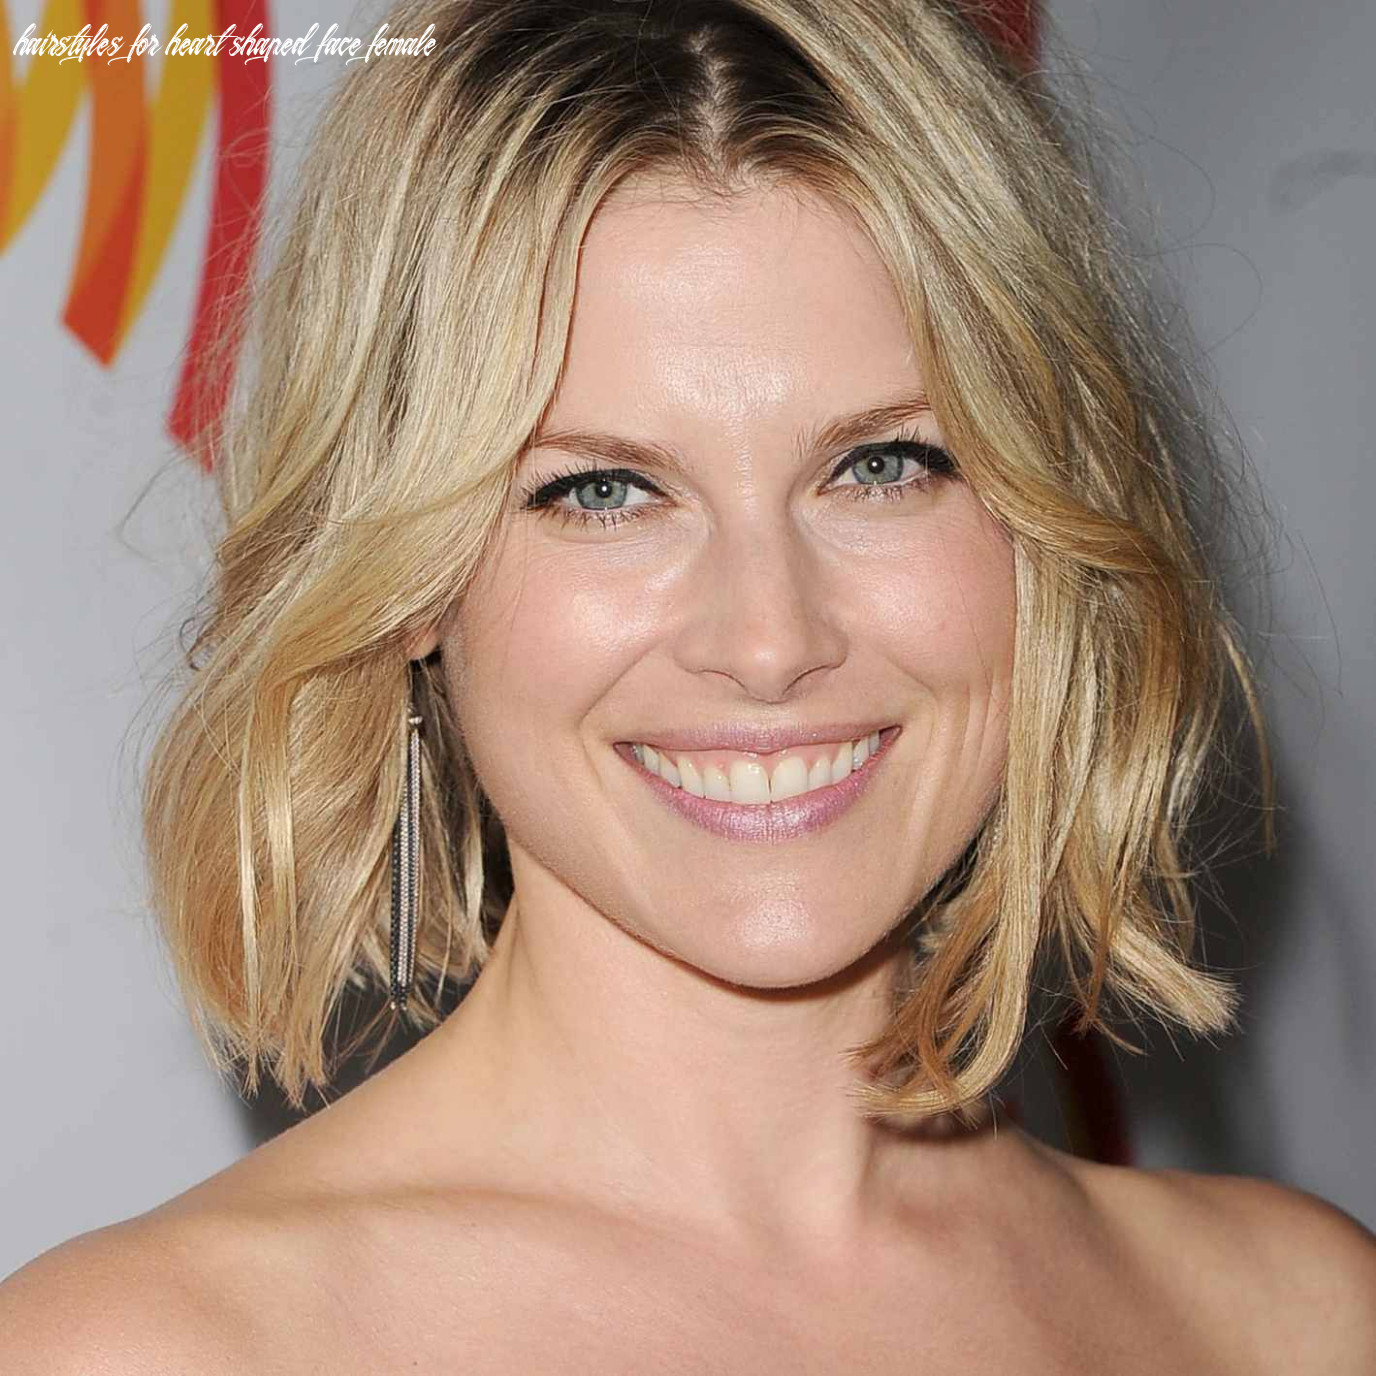 11 Flattering Hairstyles for Heart-Shaped Faces